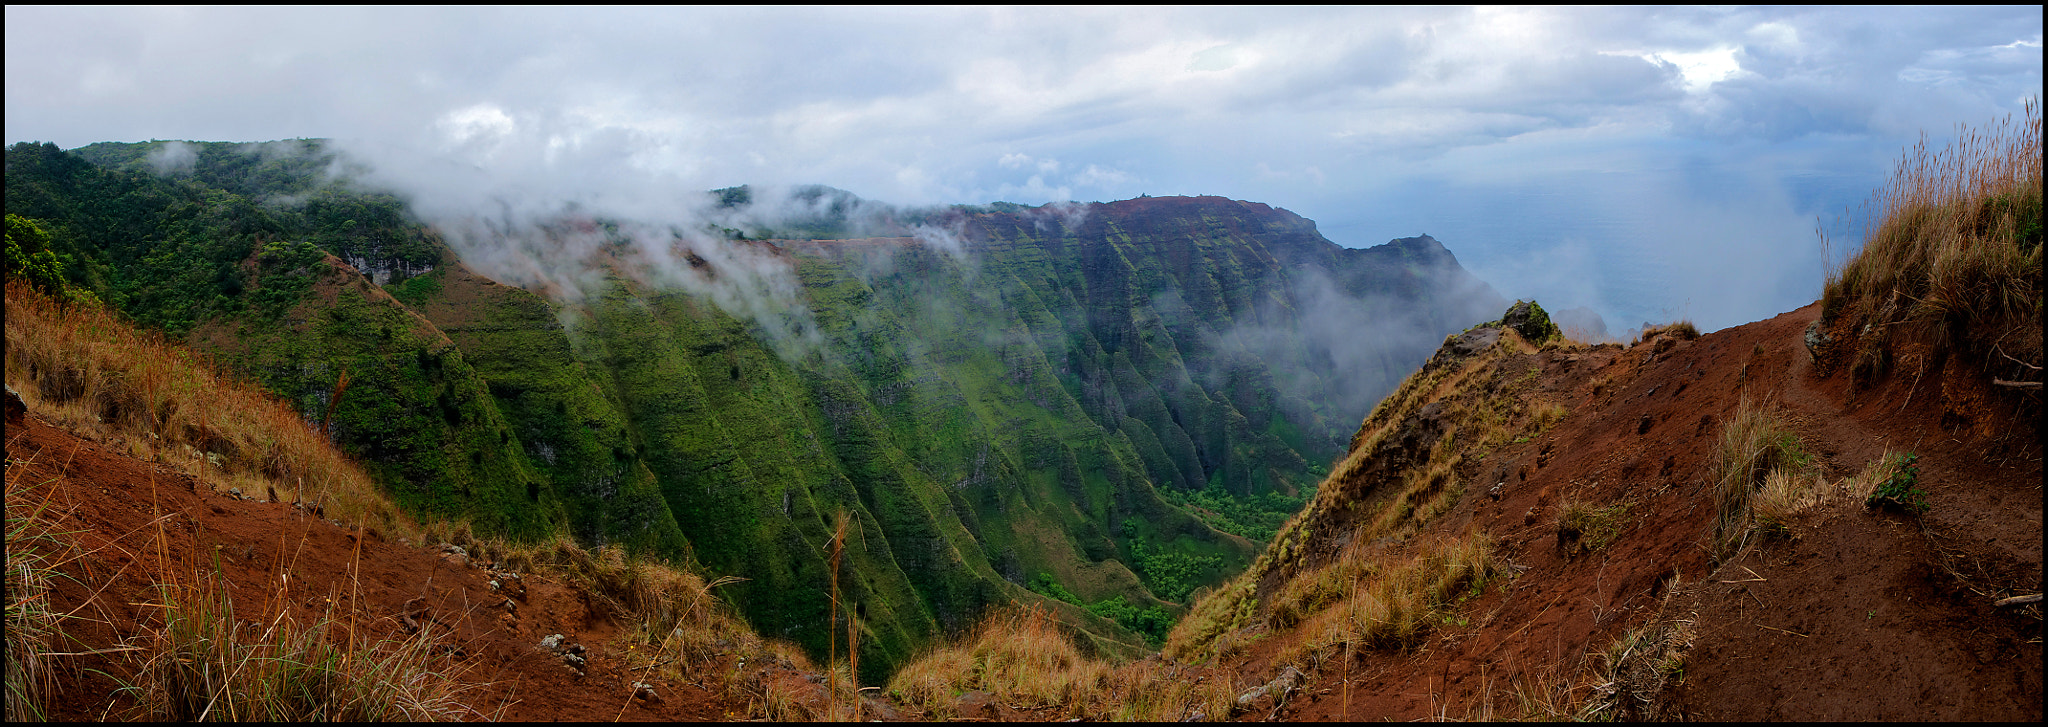 Photograph Awaawapuhi Trail Panoramic, Kauai by vovamir on 500px